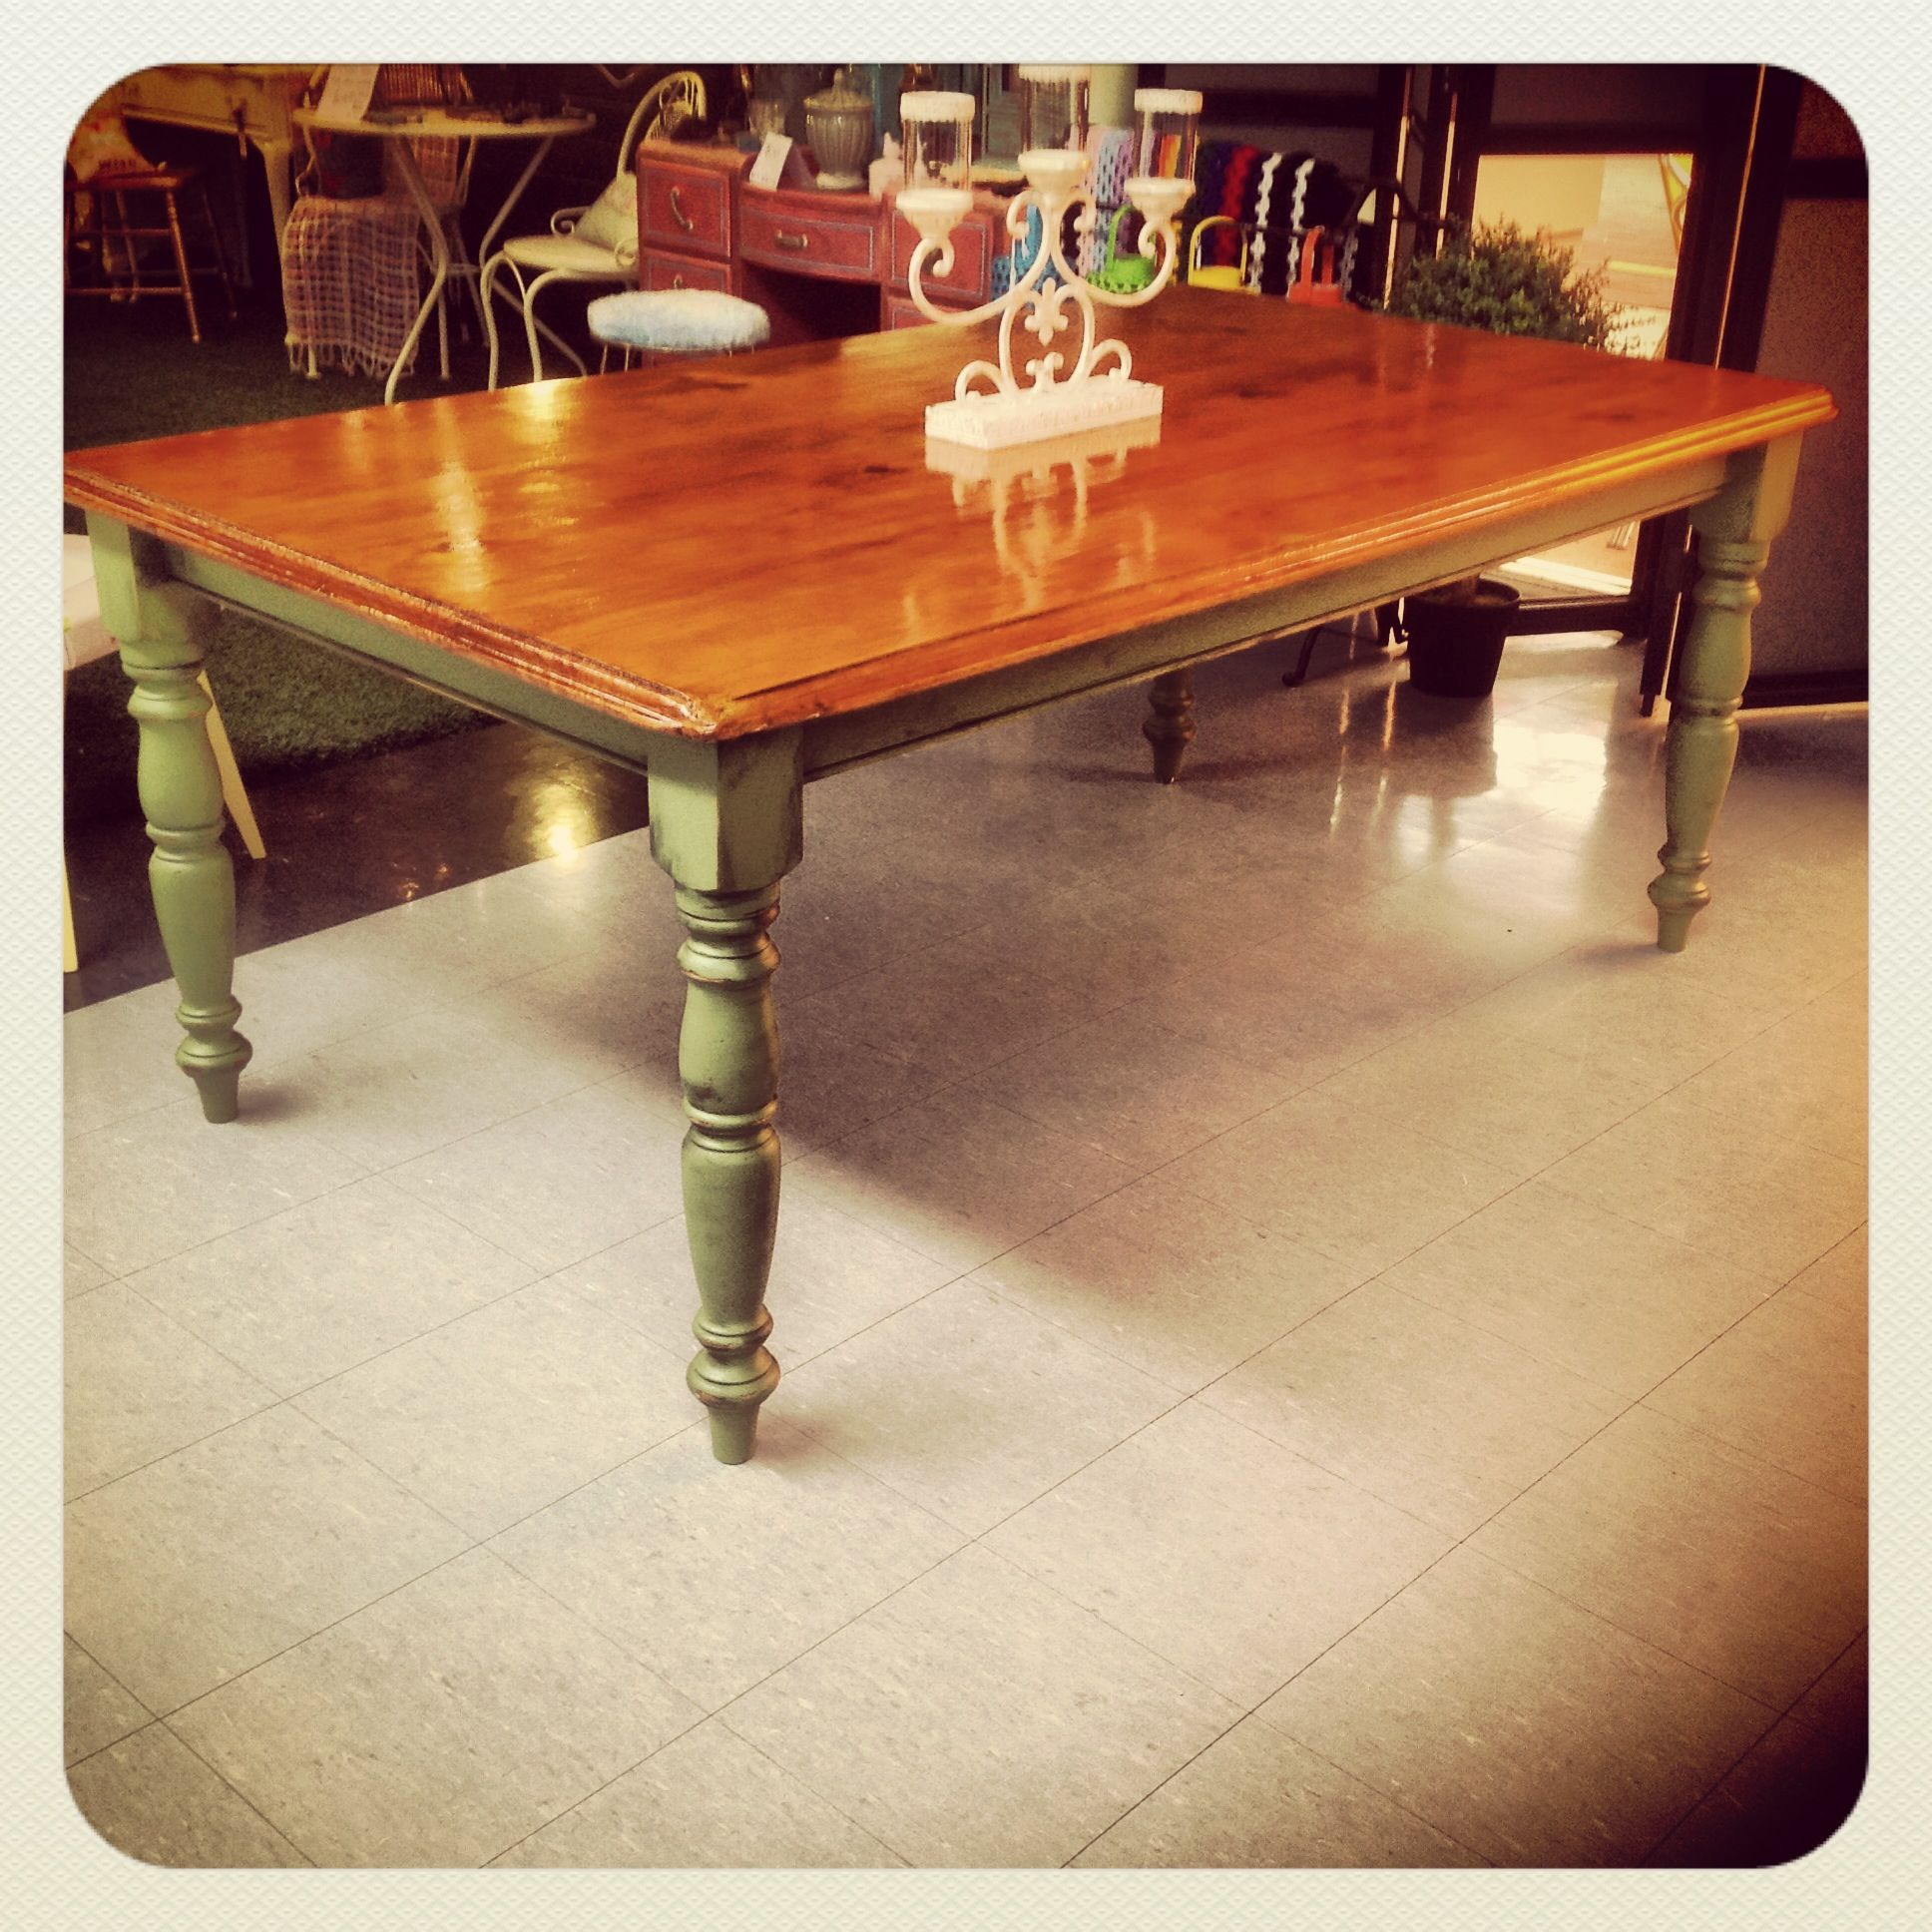 Upcycled Dining Table Like The Aged Legs